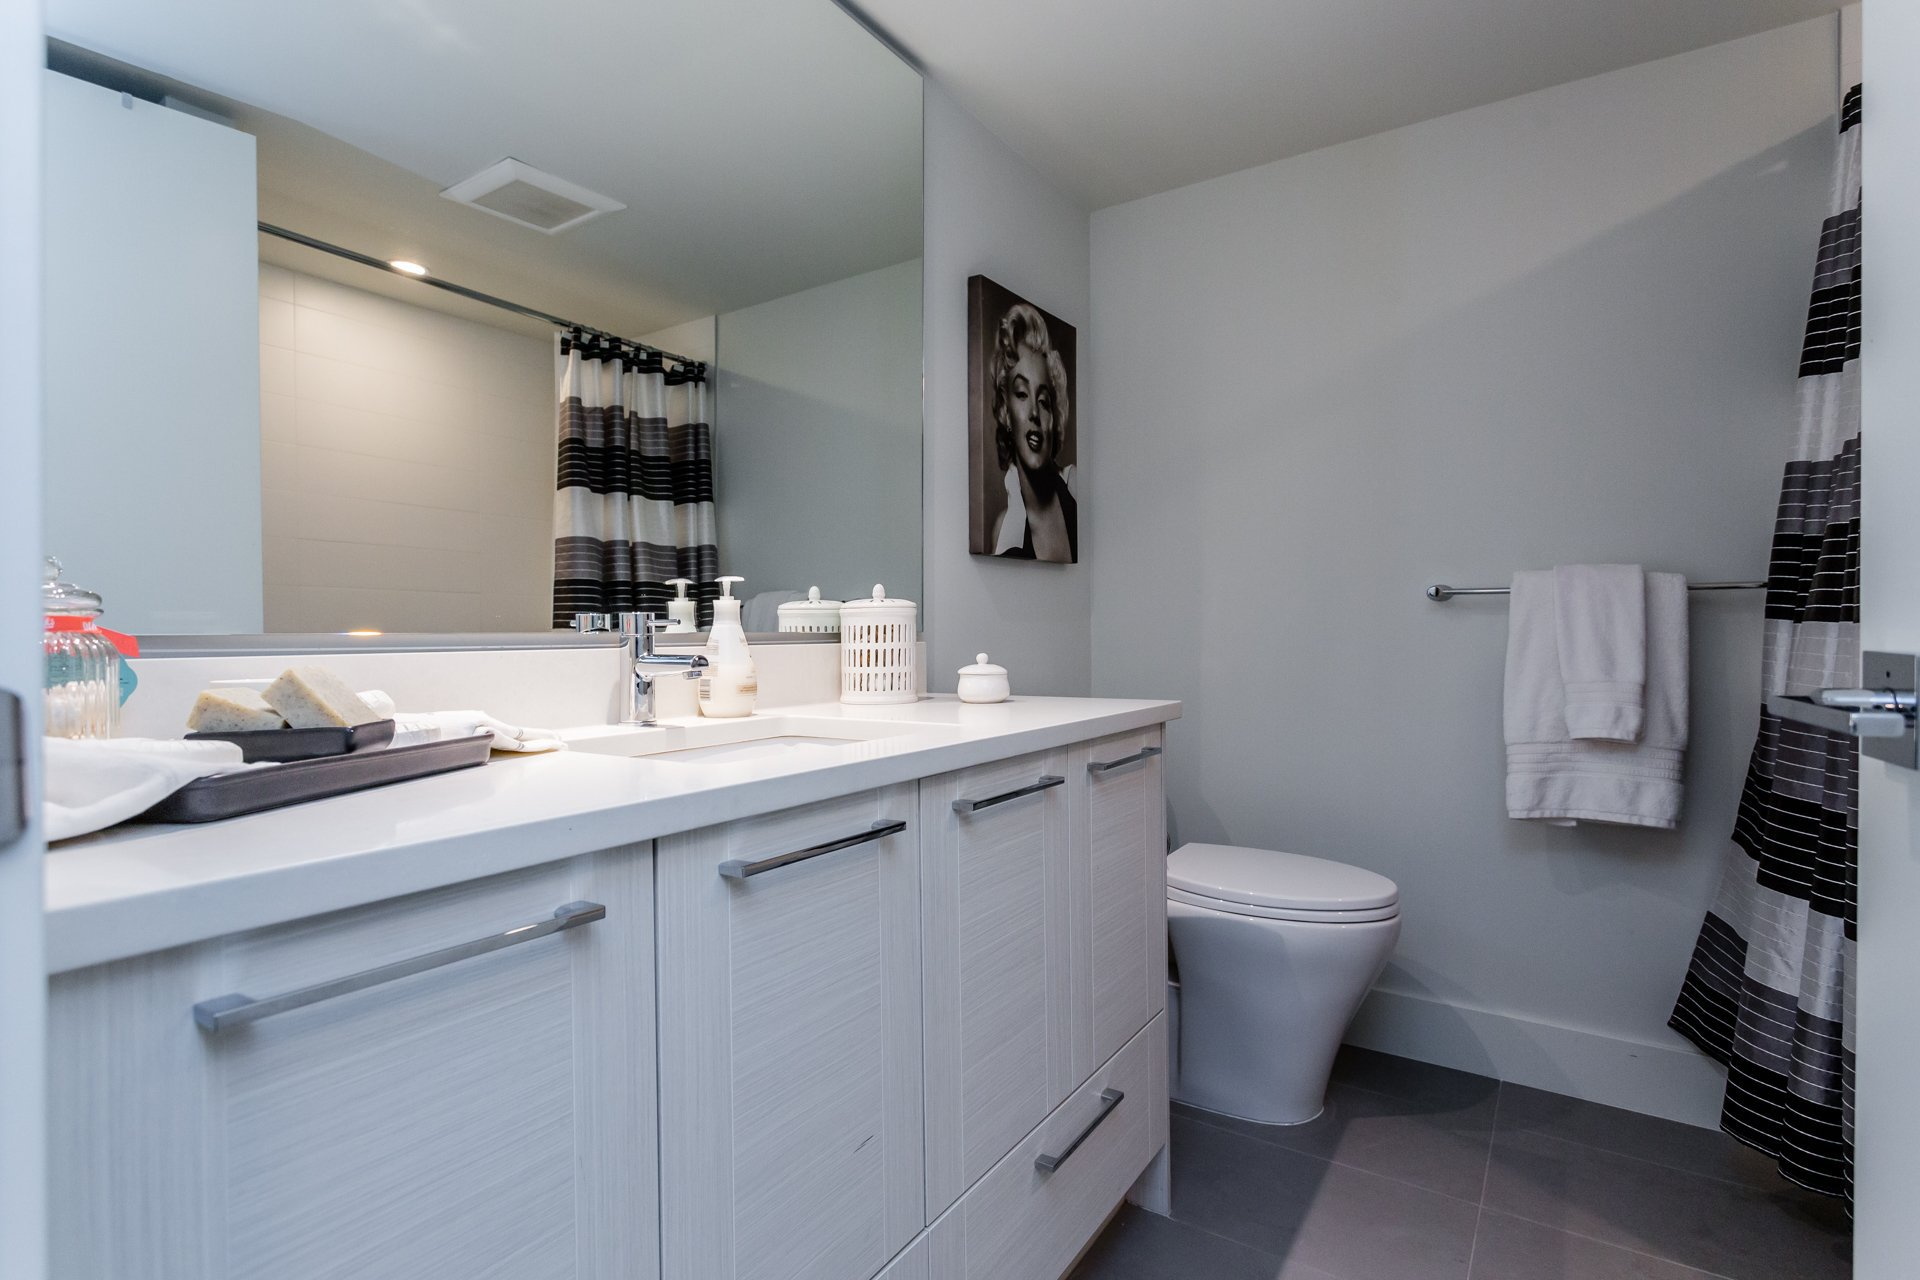 """Photo 37: Photos: 8 8217 204B Street in Langley: Willoughby Heights Townhouse for sale in """"EVERLY GREEN"""" : MLS®# R2236678"""